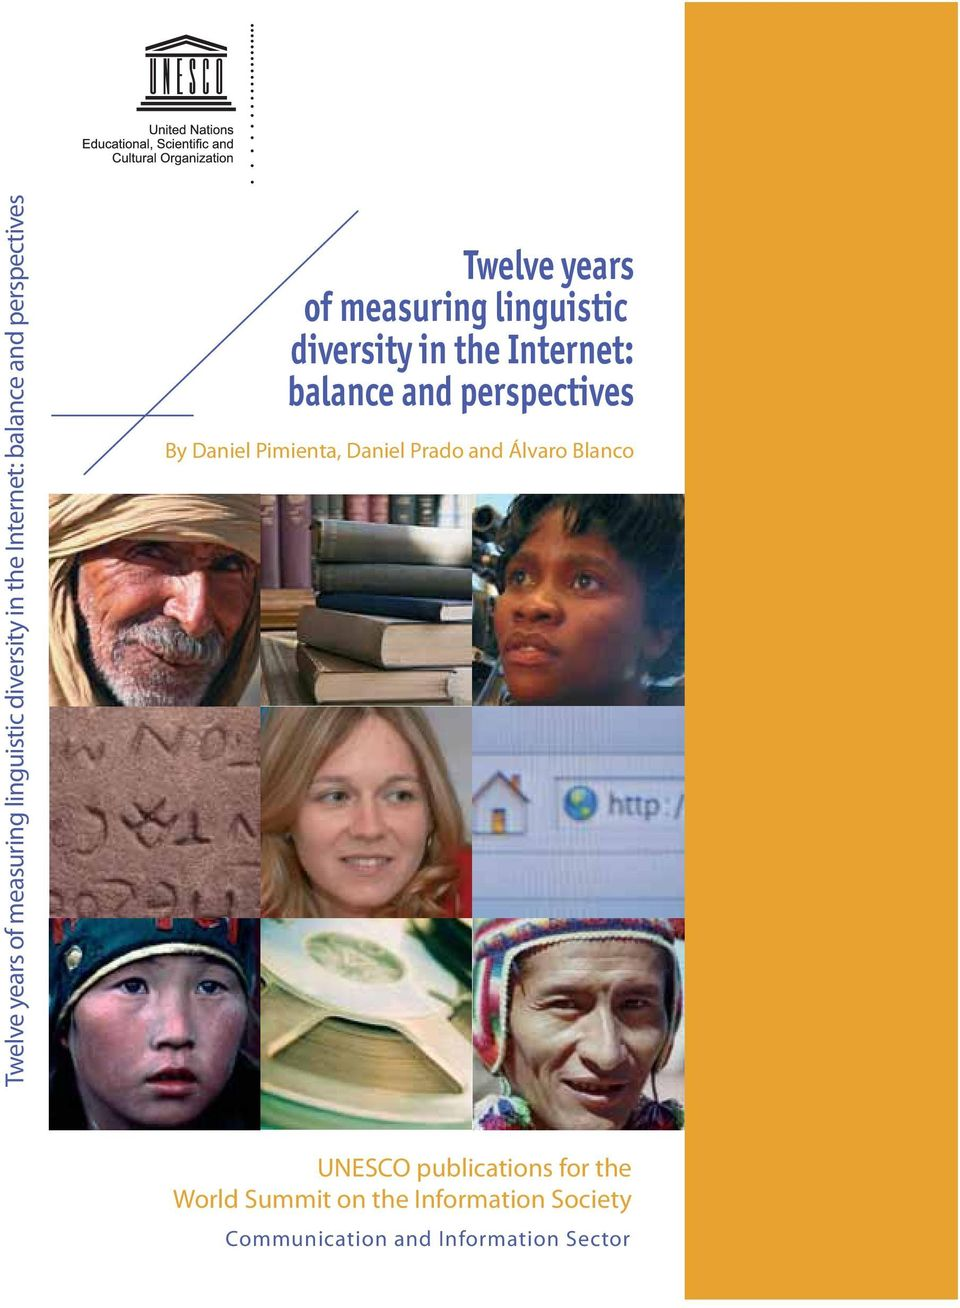 UNESCO publications for the World Summit on the Information Society Communication